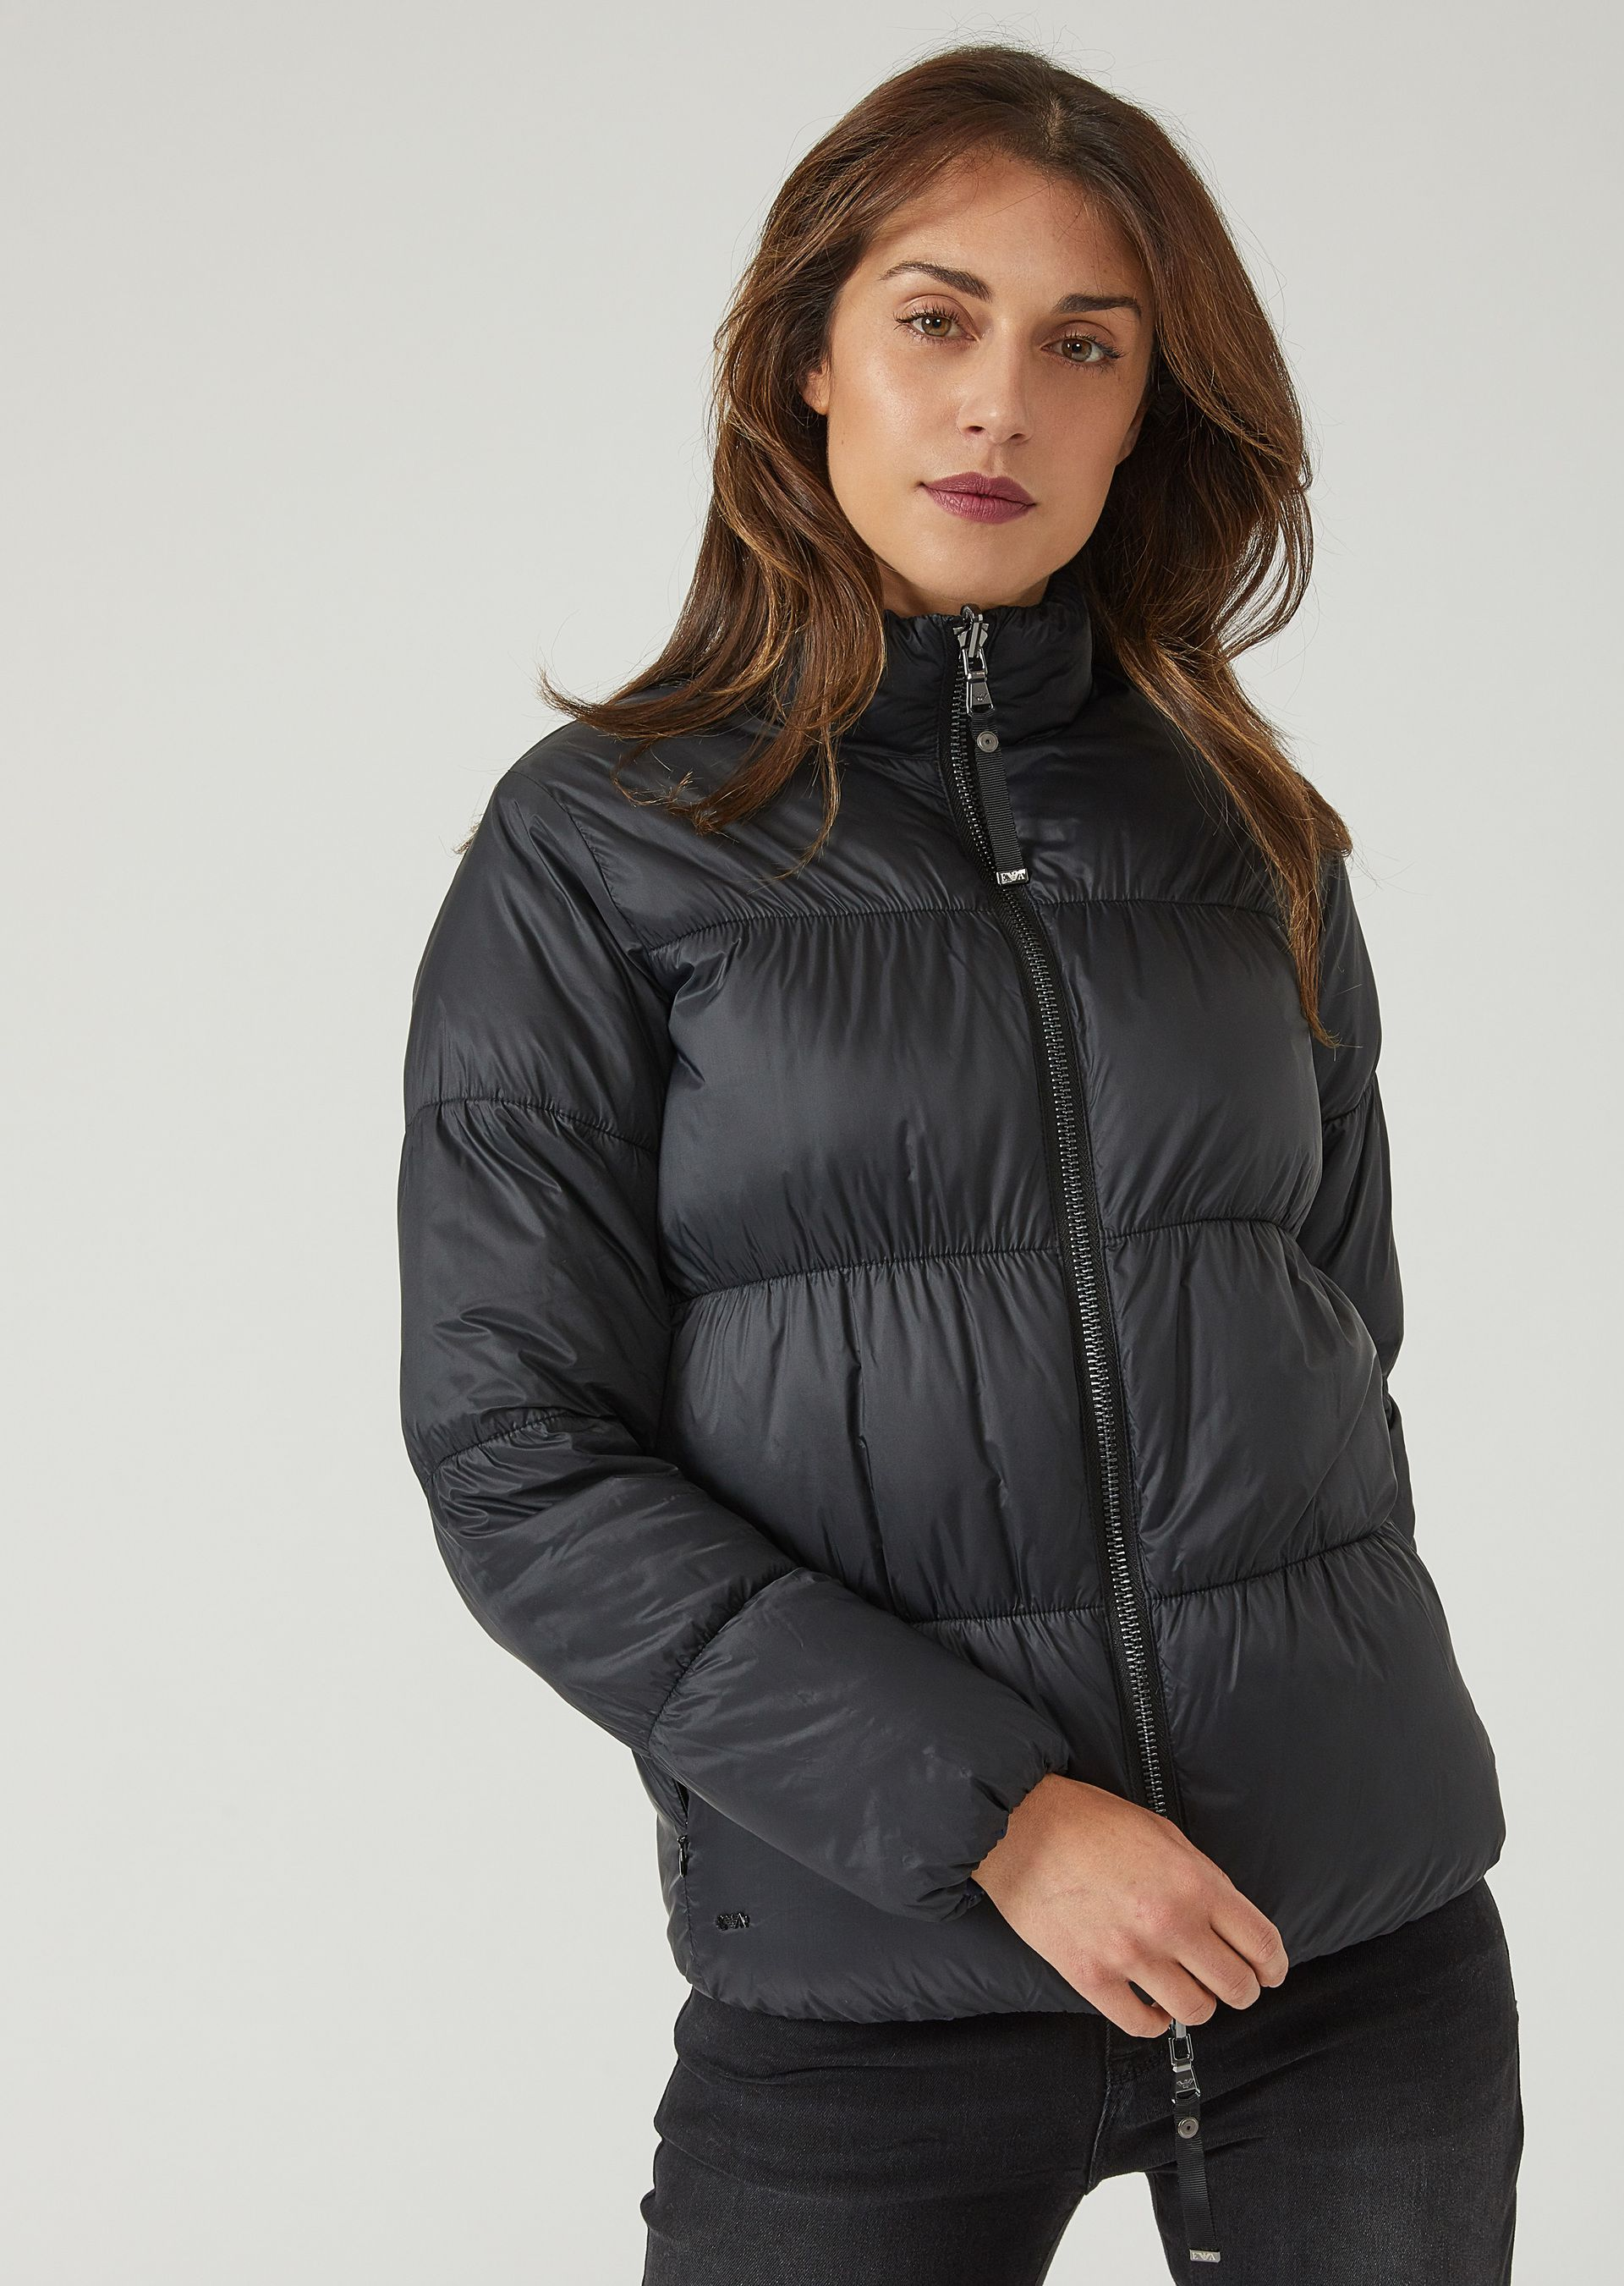 Down Jackets - Item 41843989, Navy Blue from ARMANI.COM